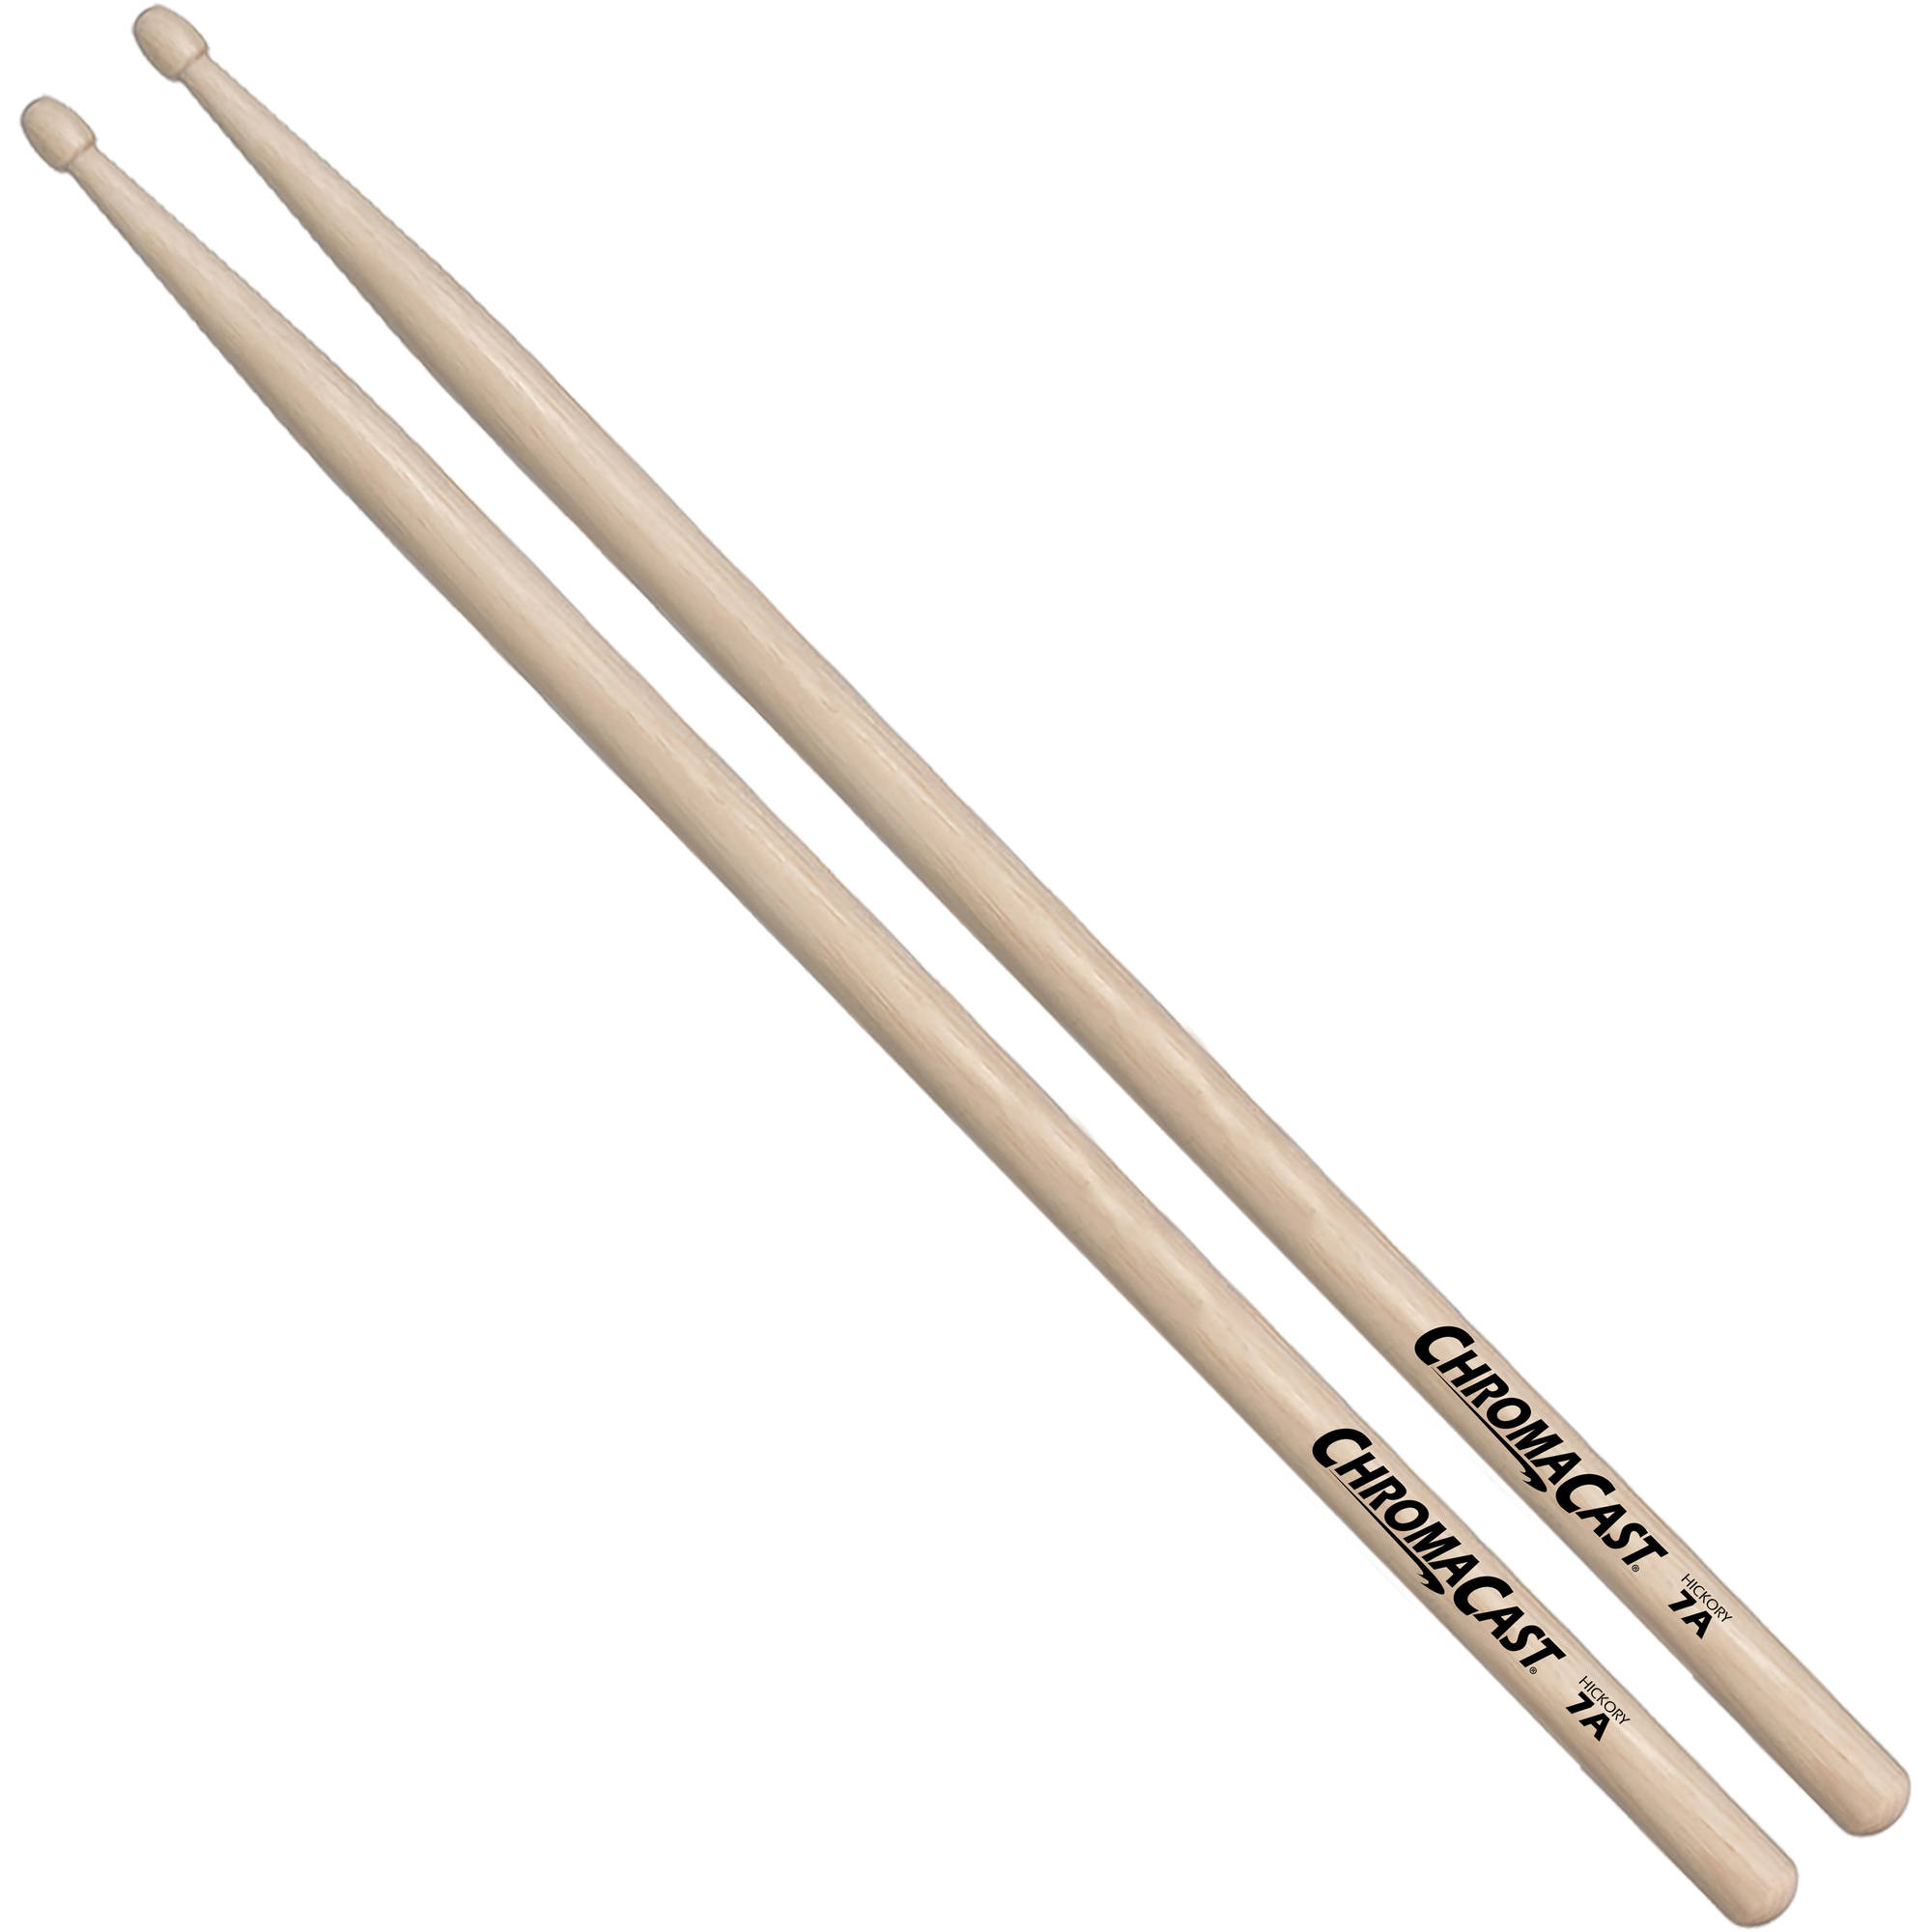 ChromaCast Hickory Nylon Tipped Drumsticks by